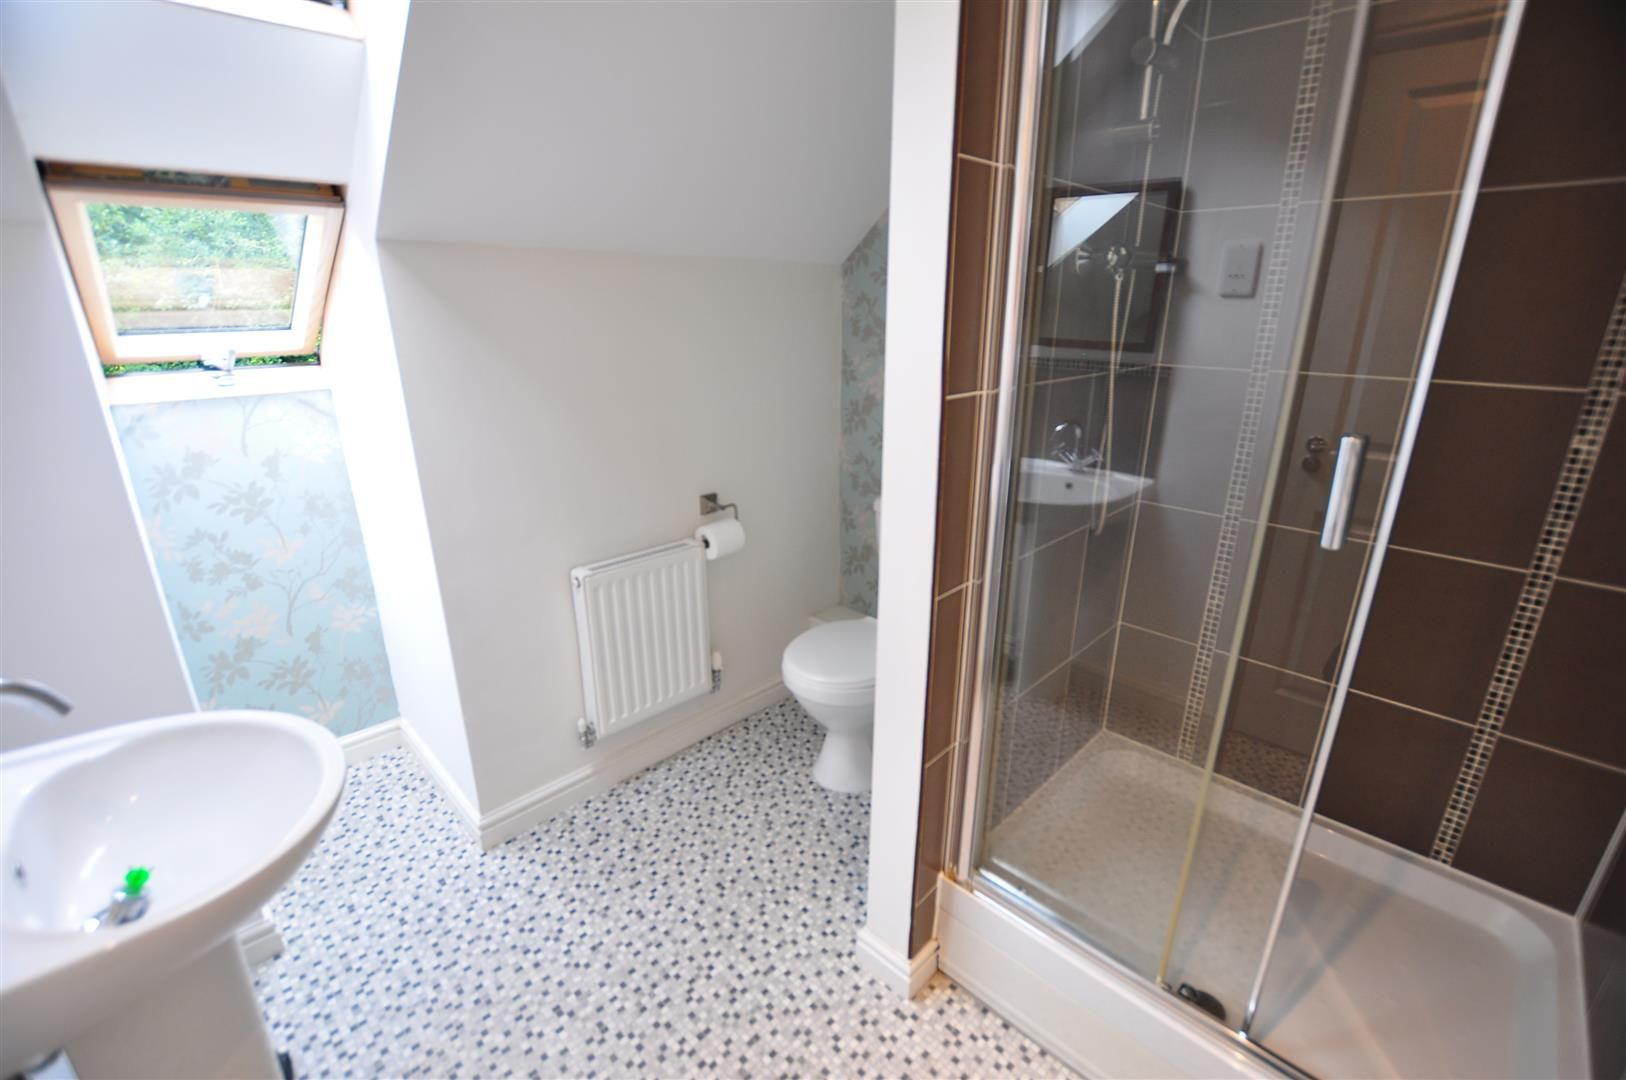 4 bed end-of-terrace for sale  - Property Image 10